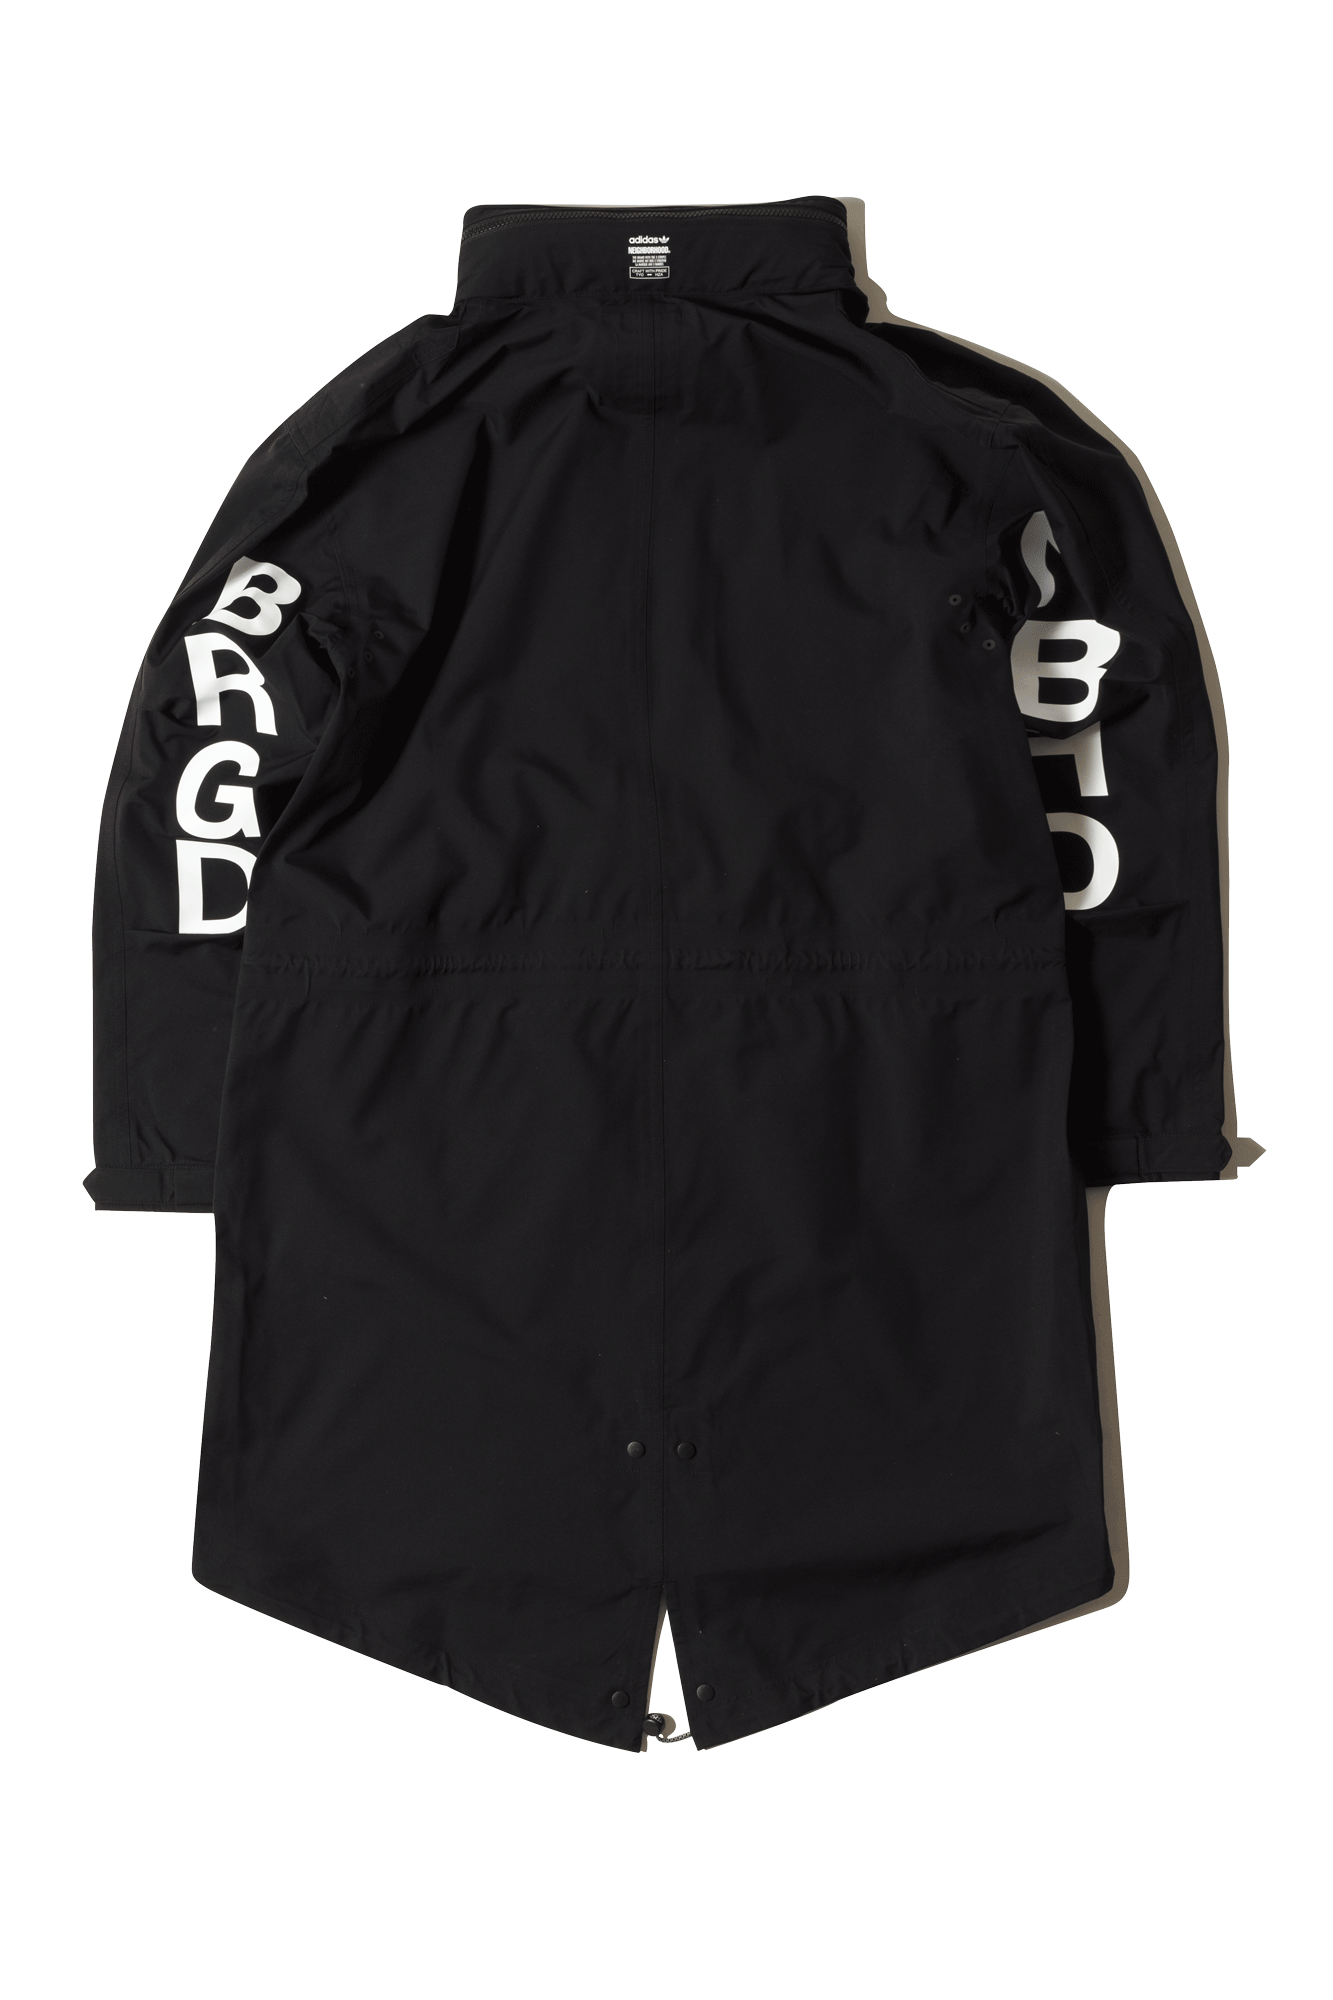 Adidas Originals Giacche & Cappotti NBHD M-51 Jacket Nero CD7737#000#C0010#M - One Block Down